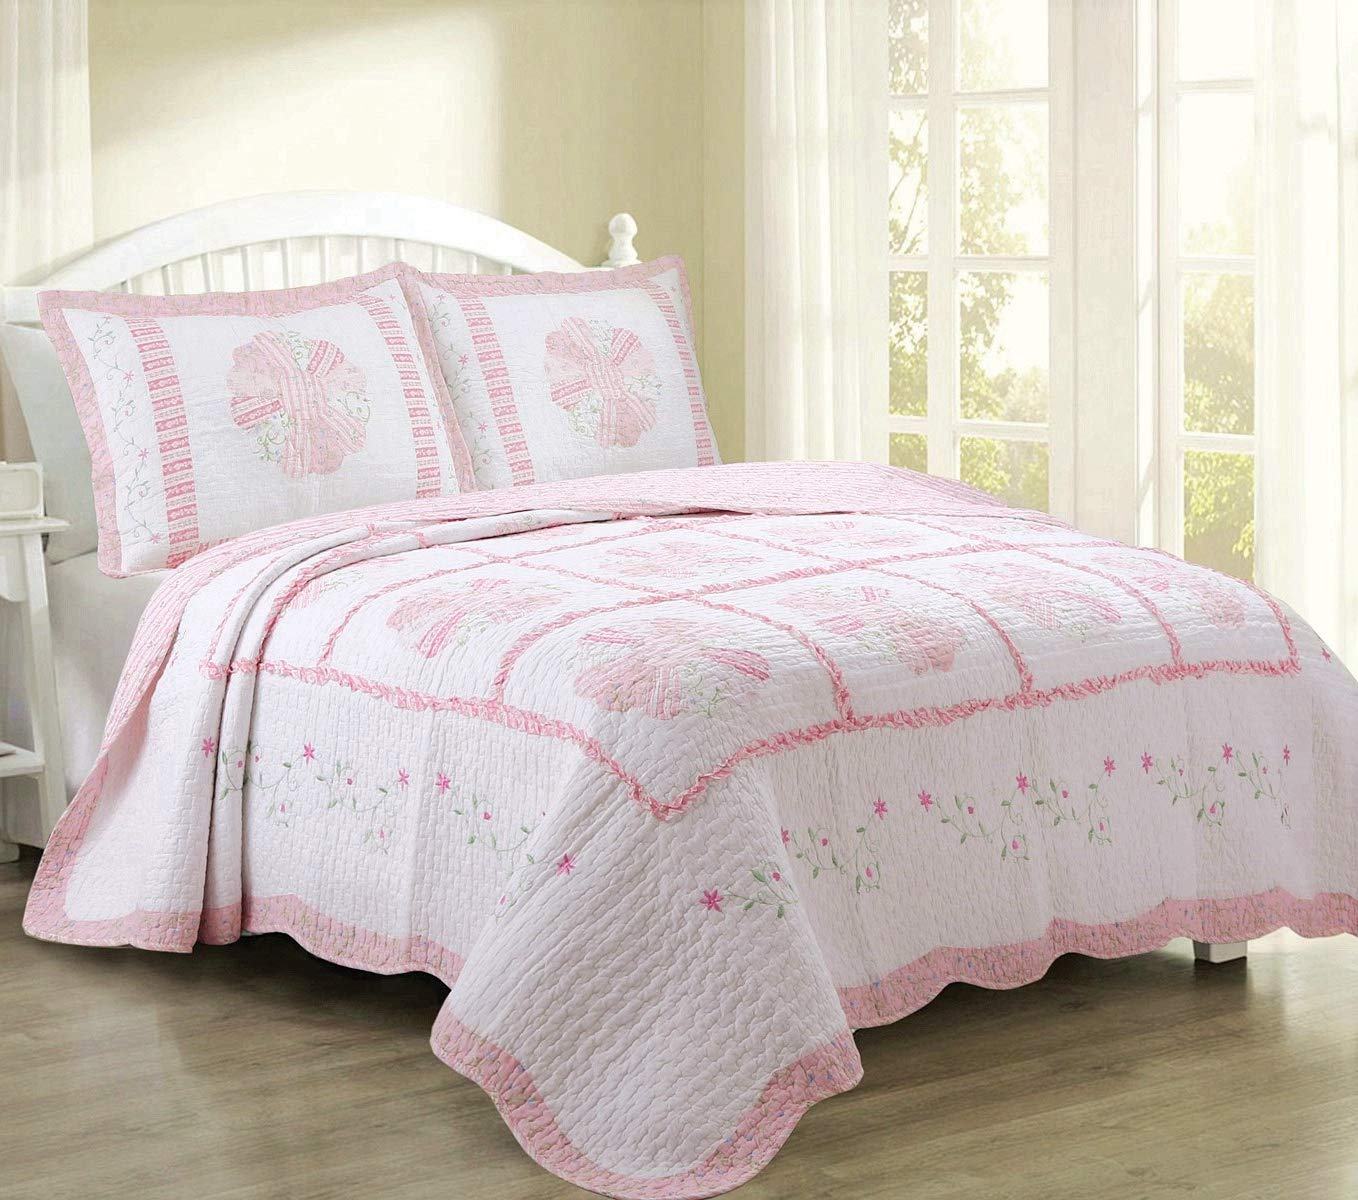 Cozy Line Home Fashions Daisy Field Bedding Quilt Set, Pink White Flower Floral Embroidered Real Patchwork 100% Cotton Reversible Coverlet Bedspread, Gifts for Kids Girl Women (Pink, Queen - 3 Piece)